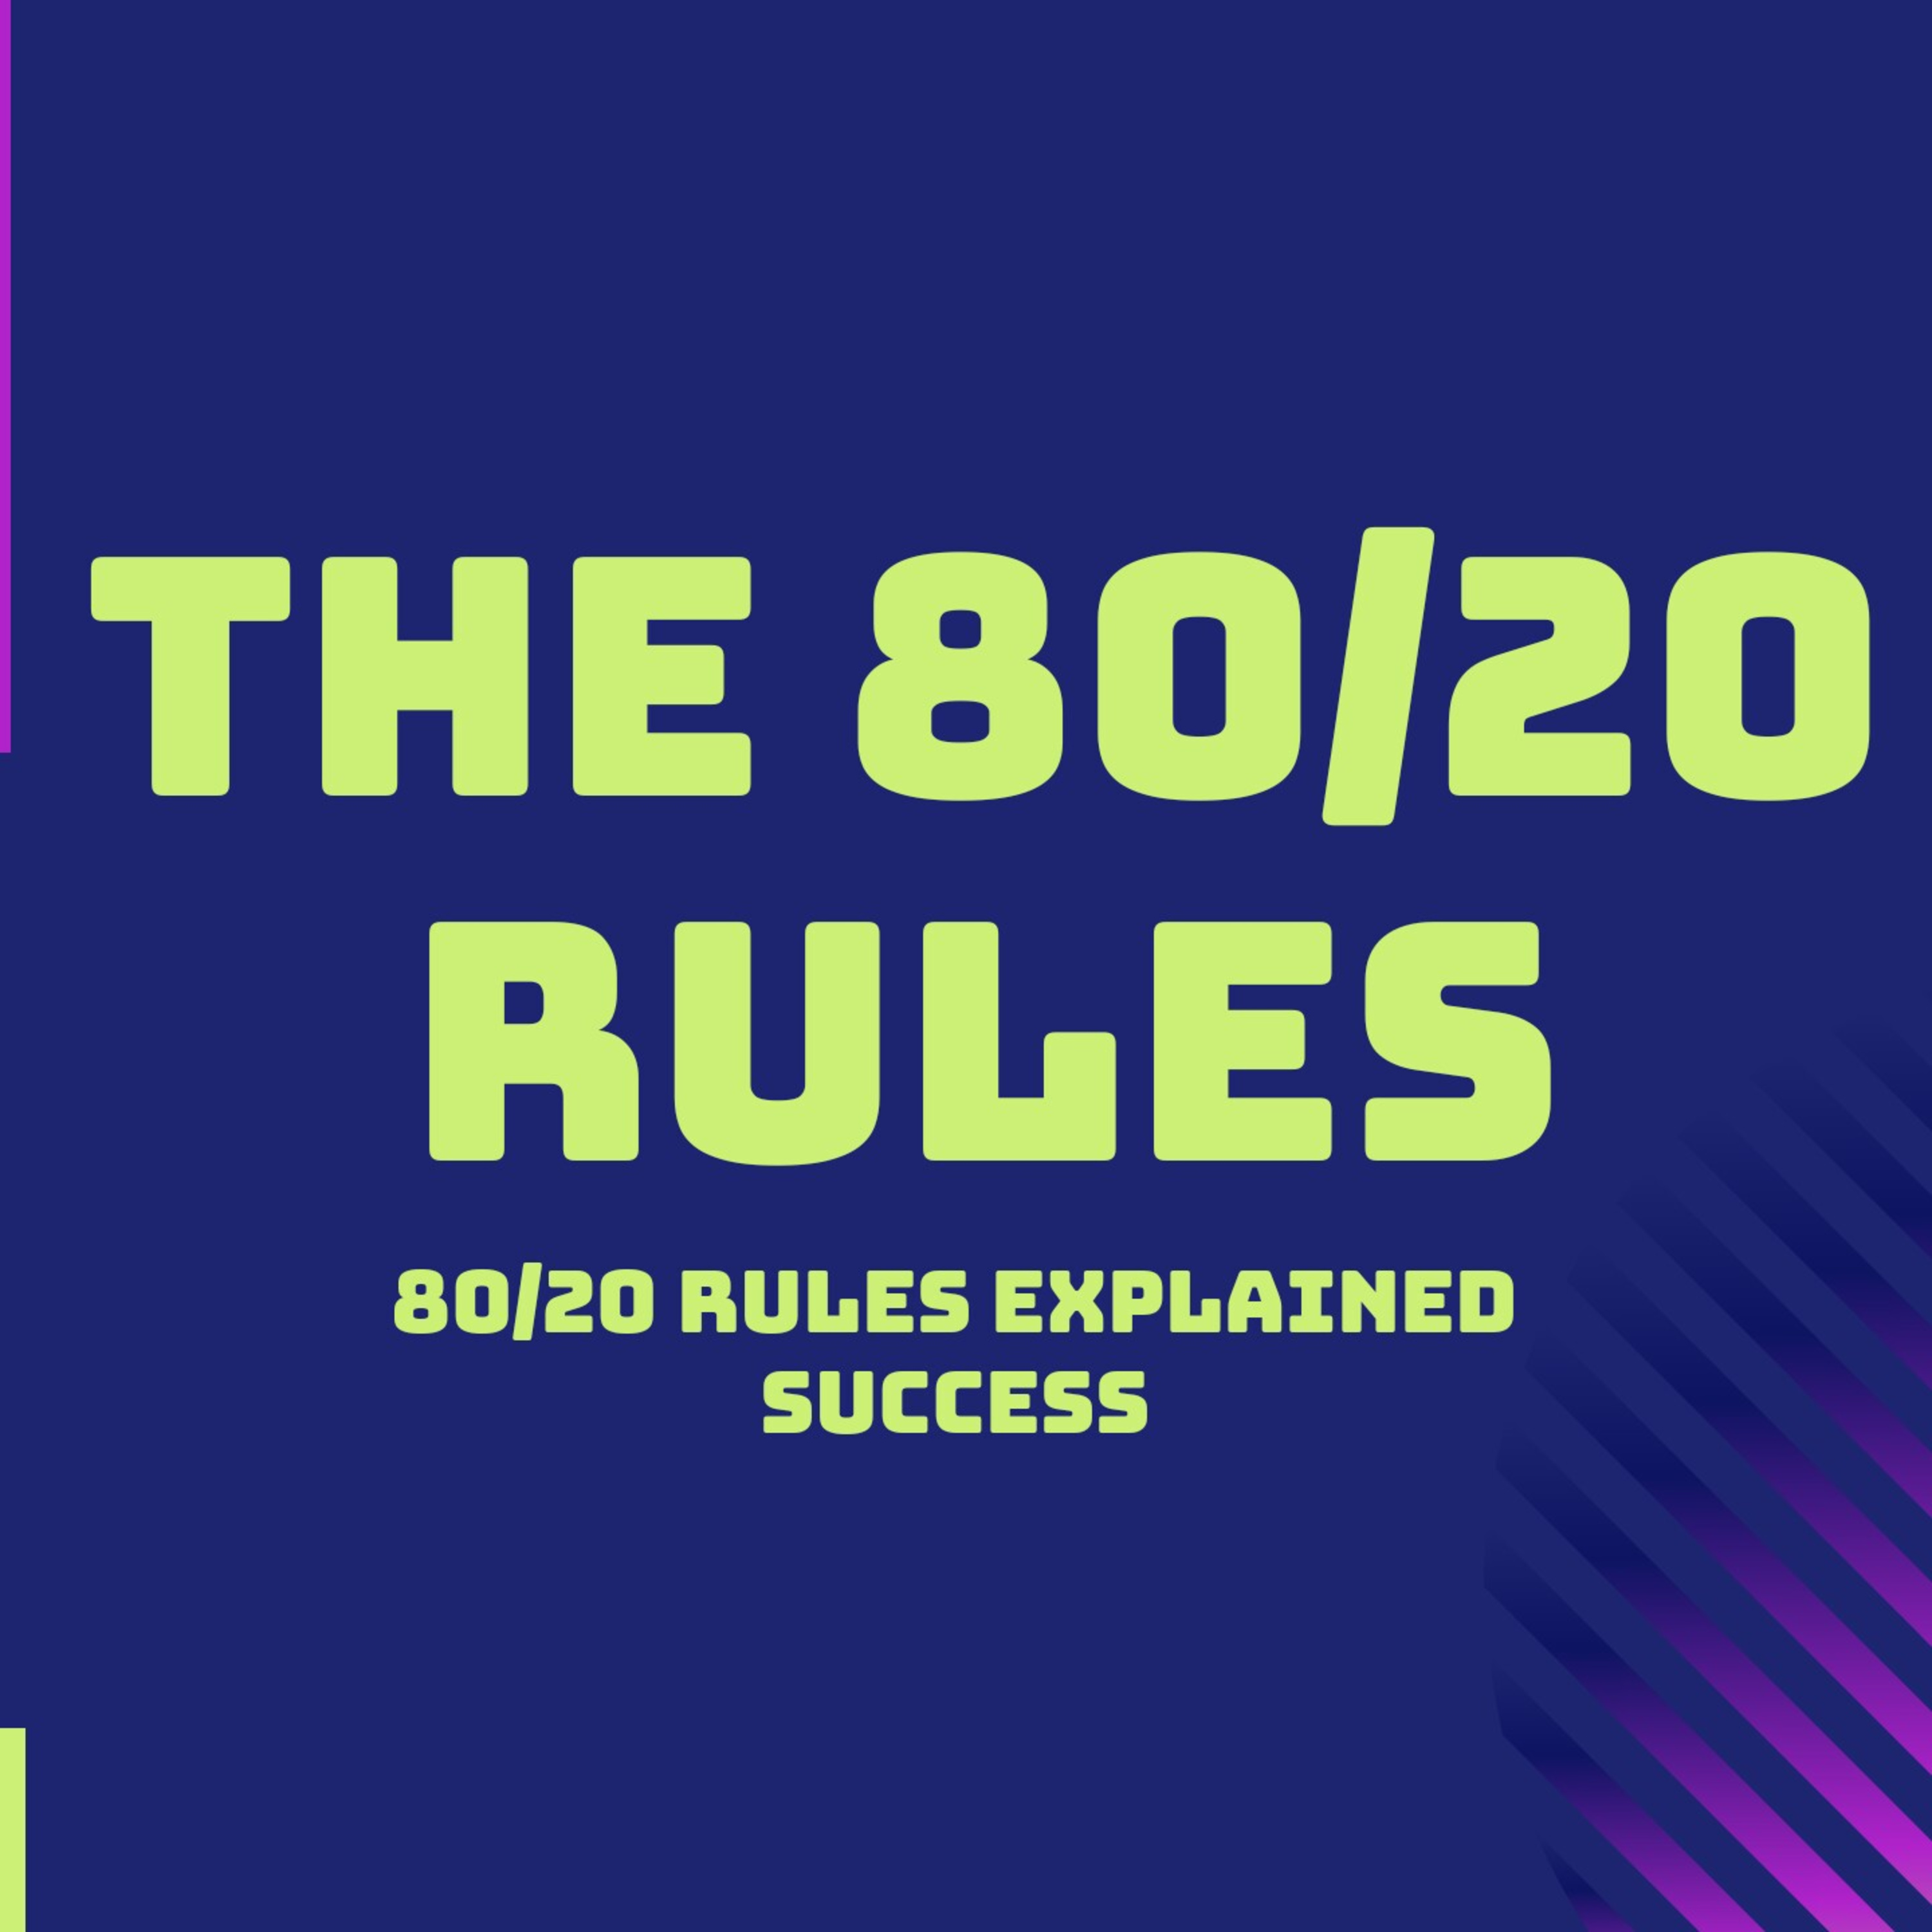 VILFREDO PARETO :- THE 80/20 RULES (80/20 Rules Explained) How to get more success by working less